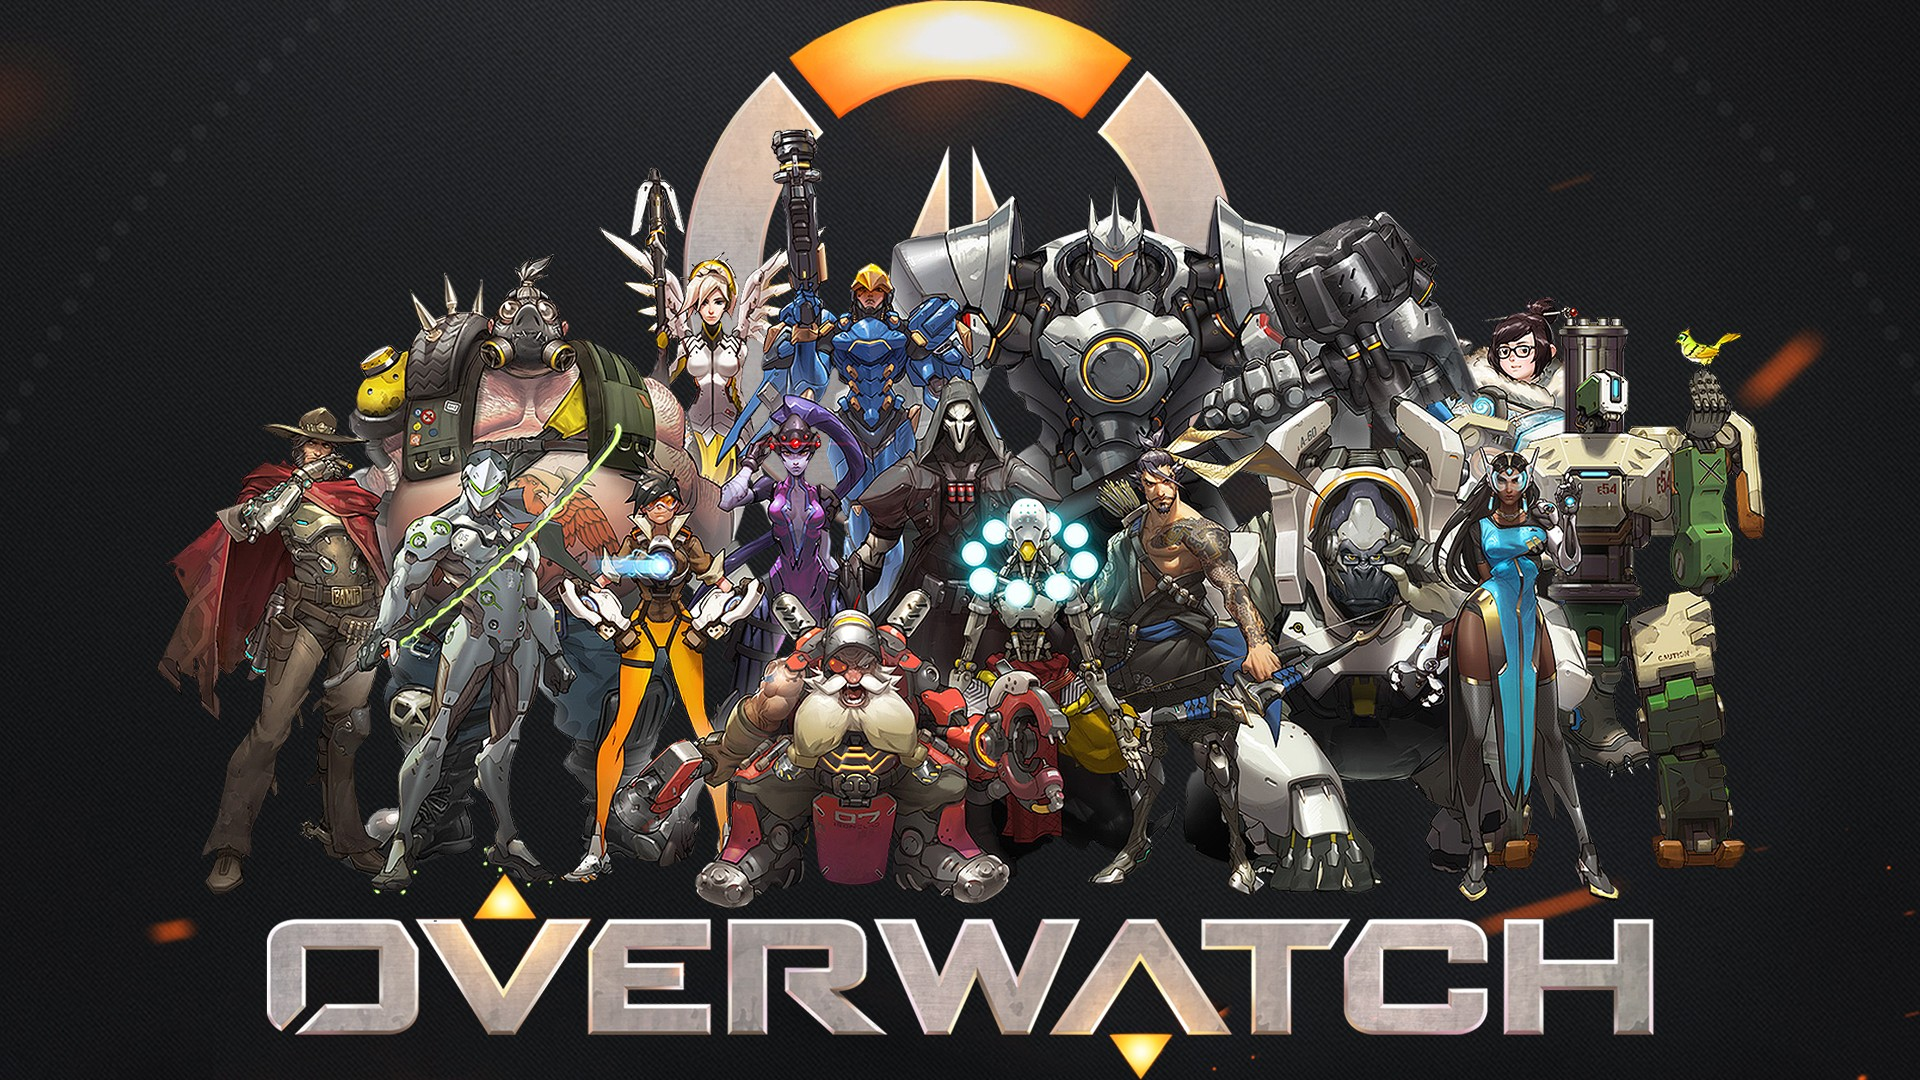 Overwatch Wallpaper 1080p ·① Download Free Cool High